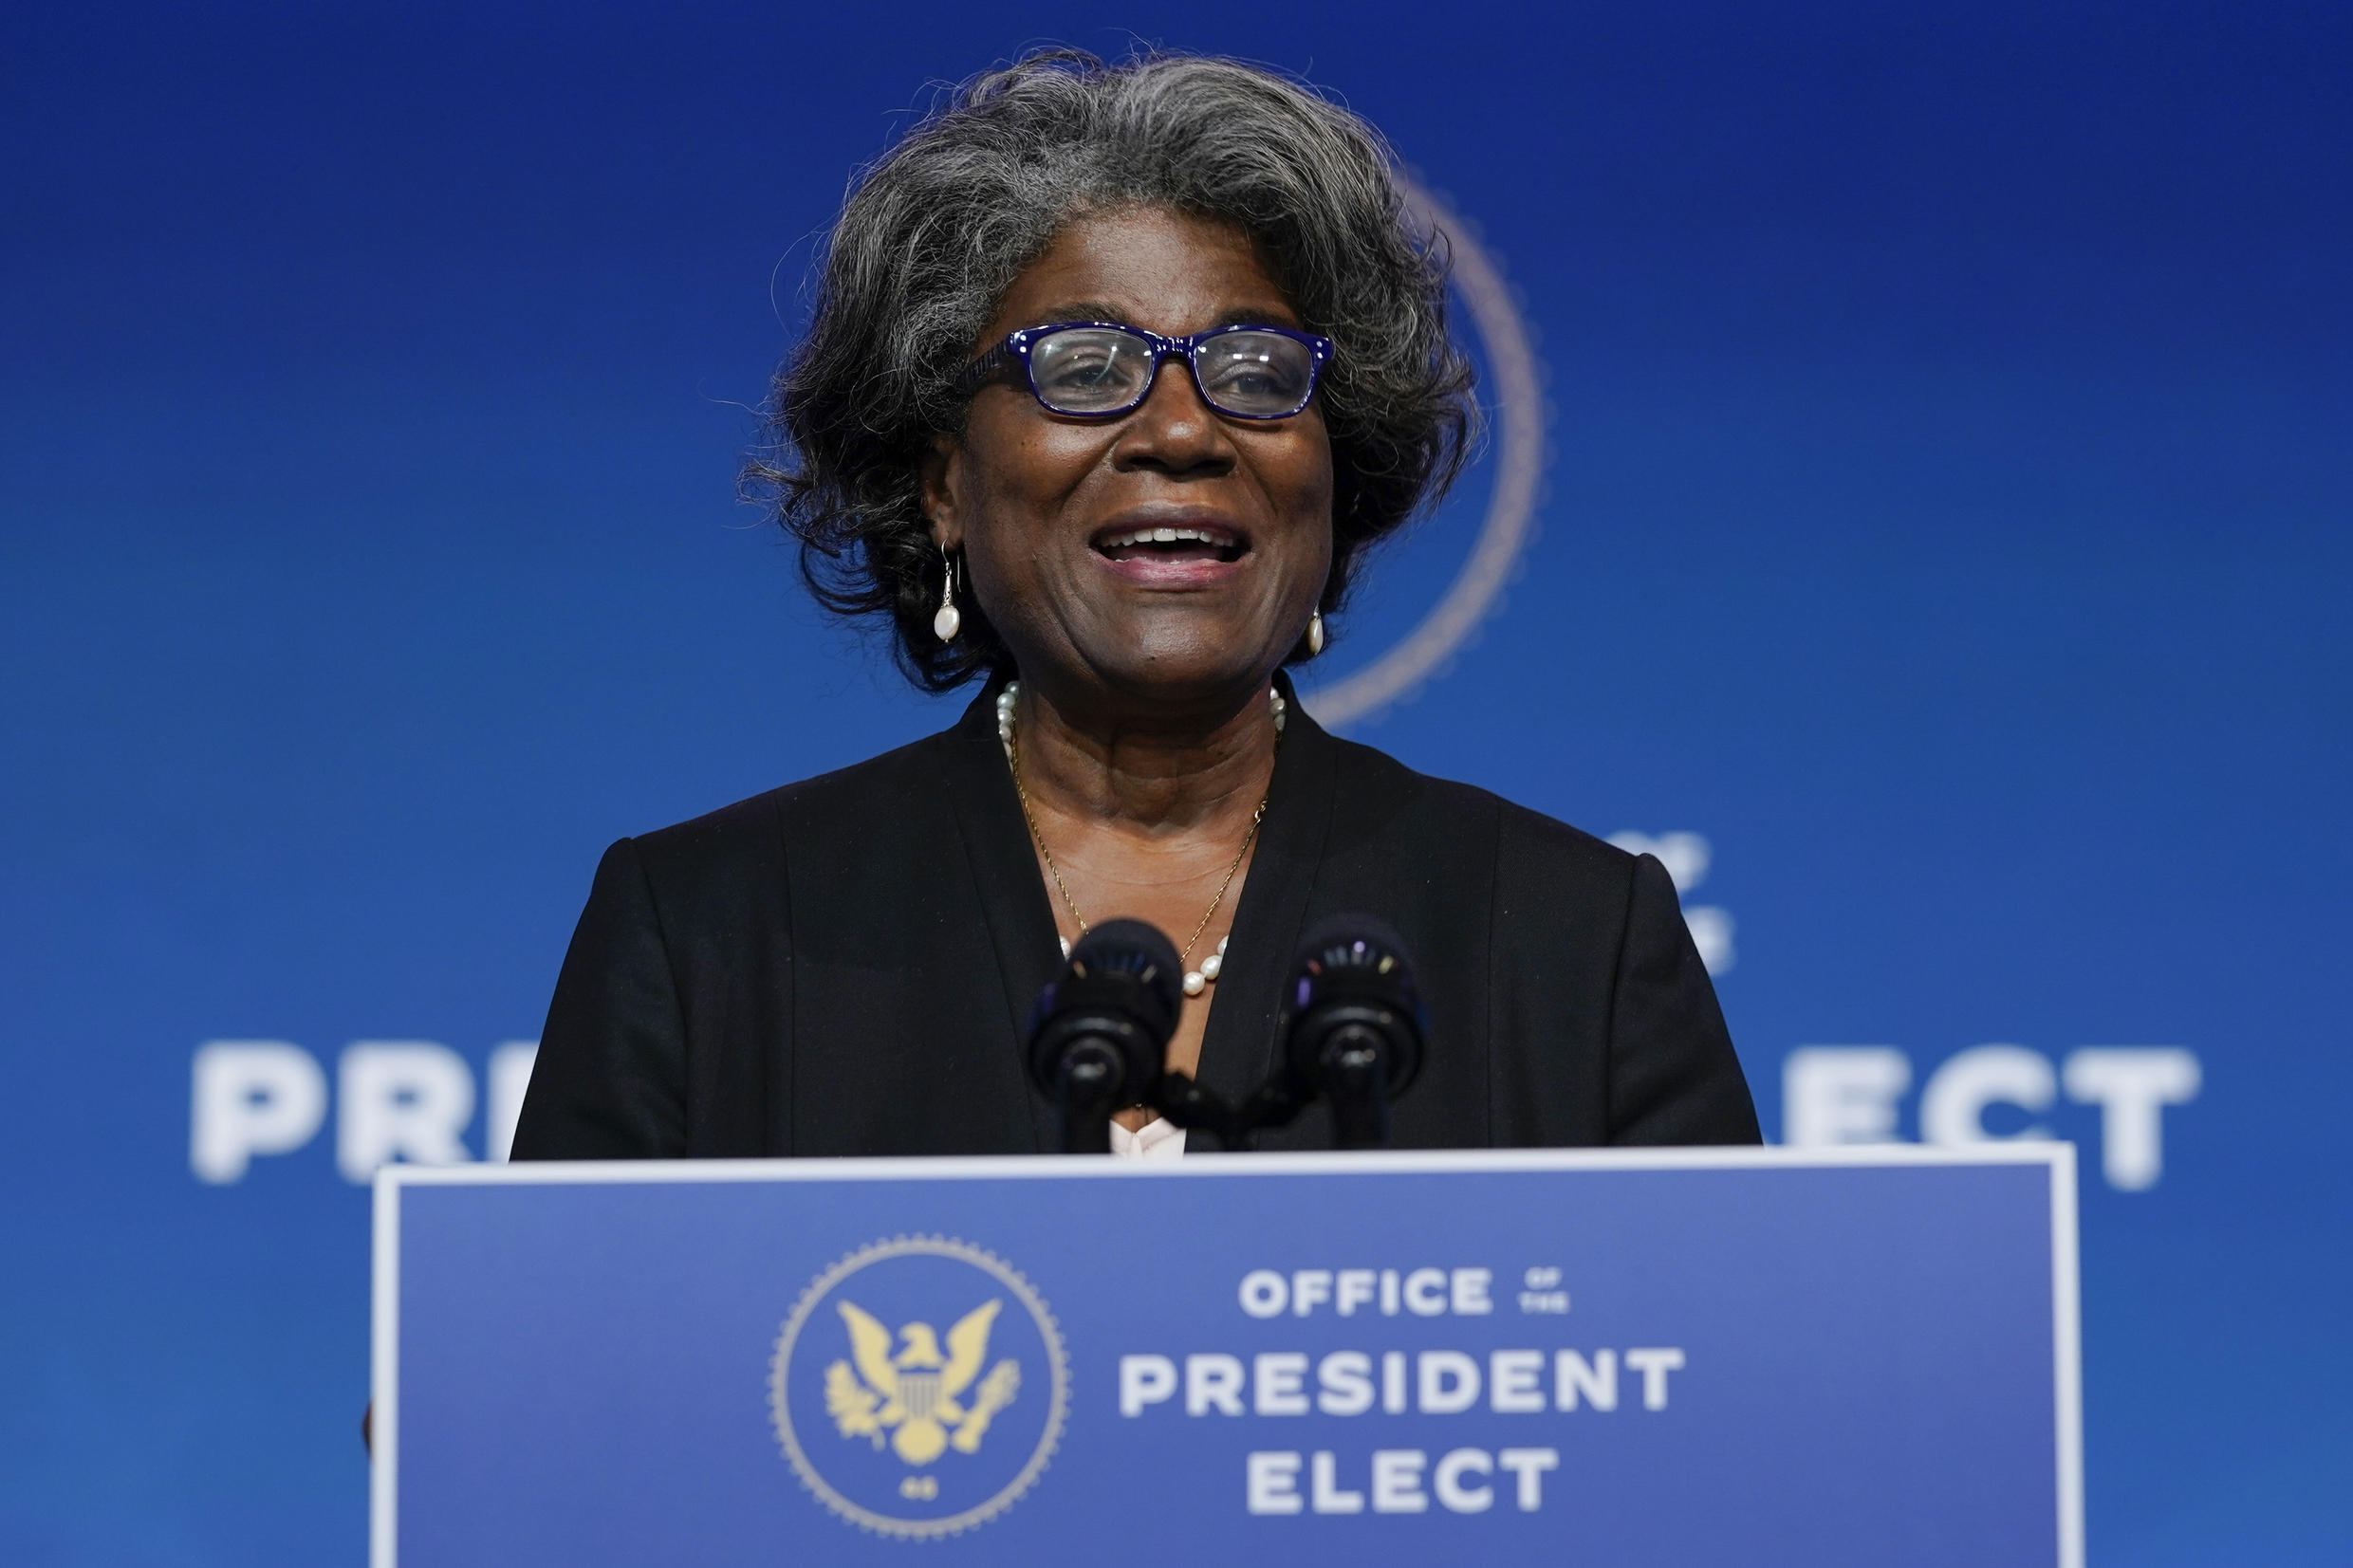 President-elect Joe Biden's U.S. Ambassador to the United Nations nominee Ambassador Linda Thomas-Greenfield speaks at The Queen theater, Tuesday, Nov. 24, 2020, in Wilmington, Del.